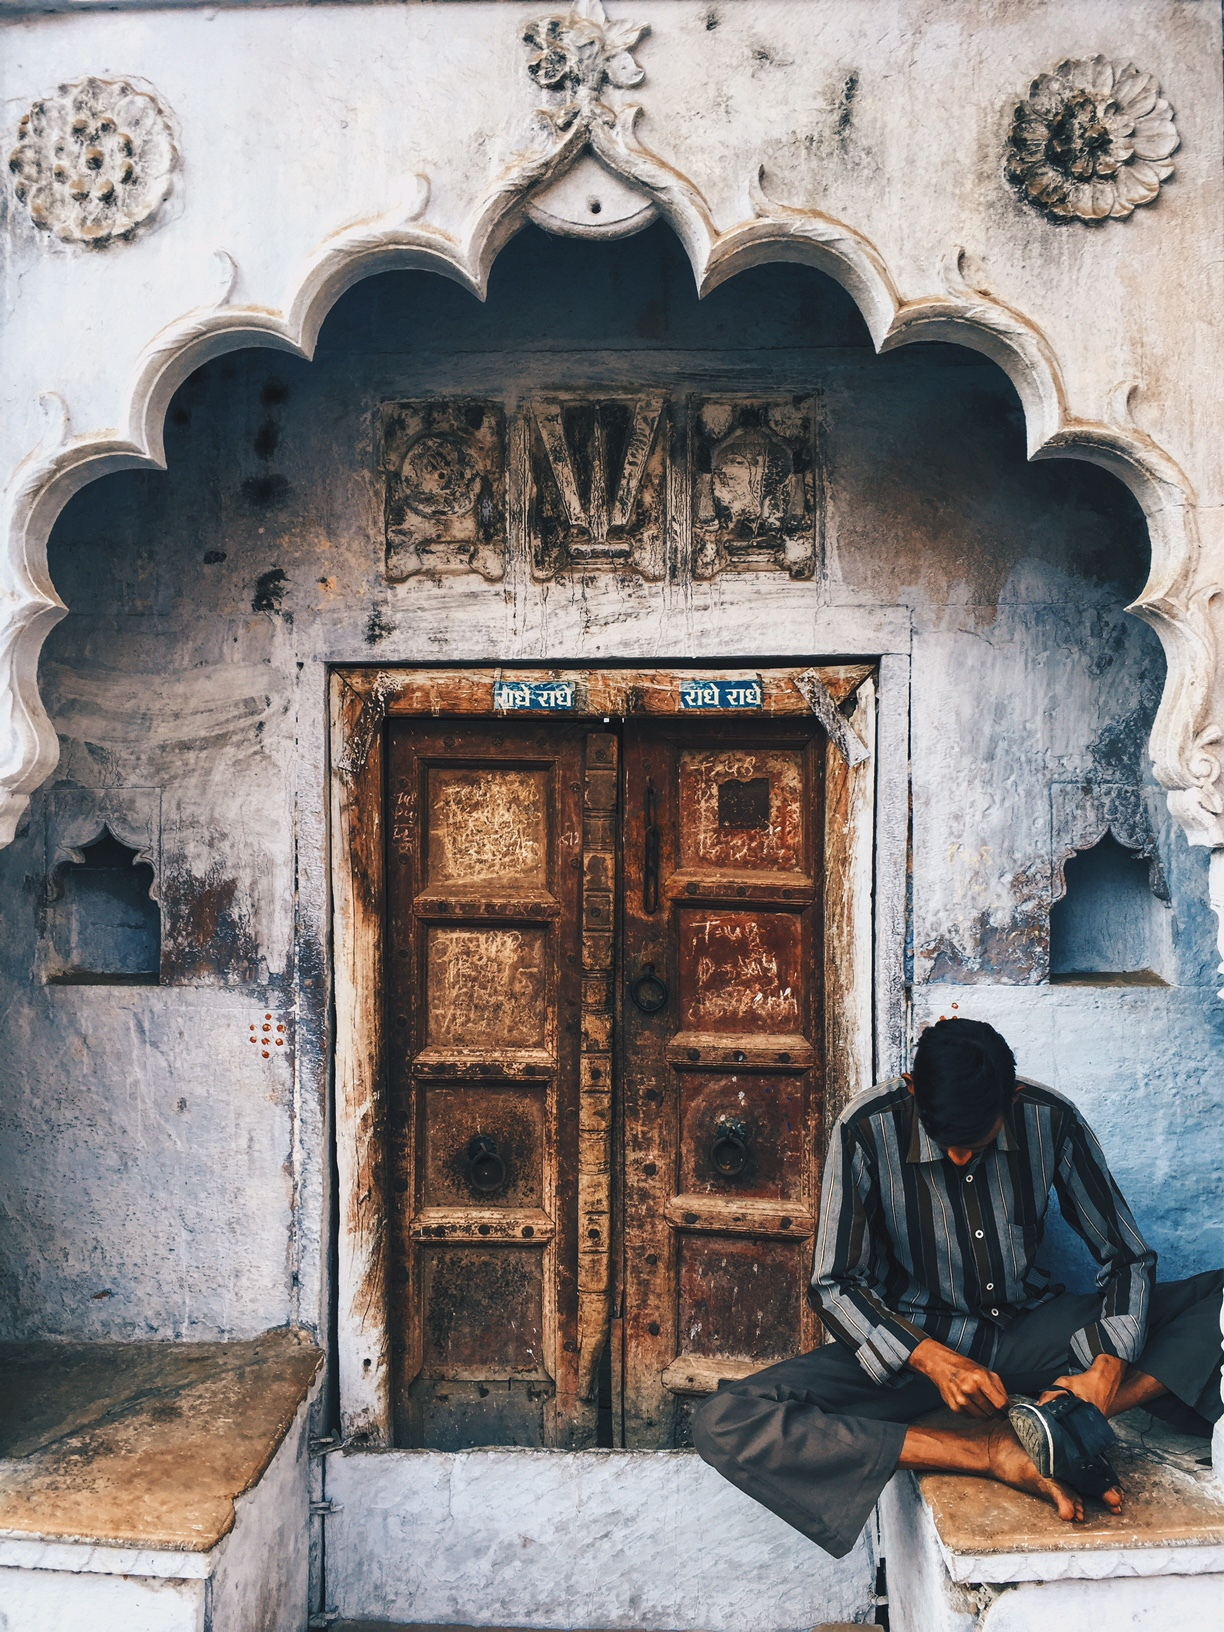 A traditional old door with a man resting next to it. & Doors Are Stories: The Photographic Obsession of Divyakshi Gupta ... pezcame.com